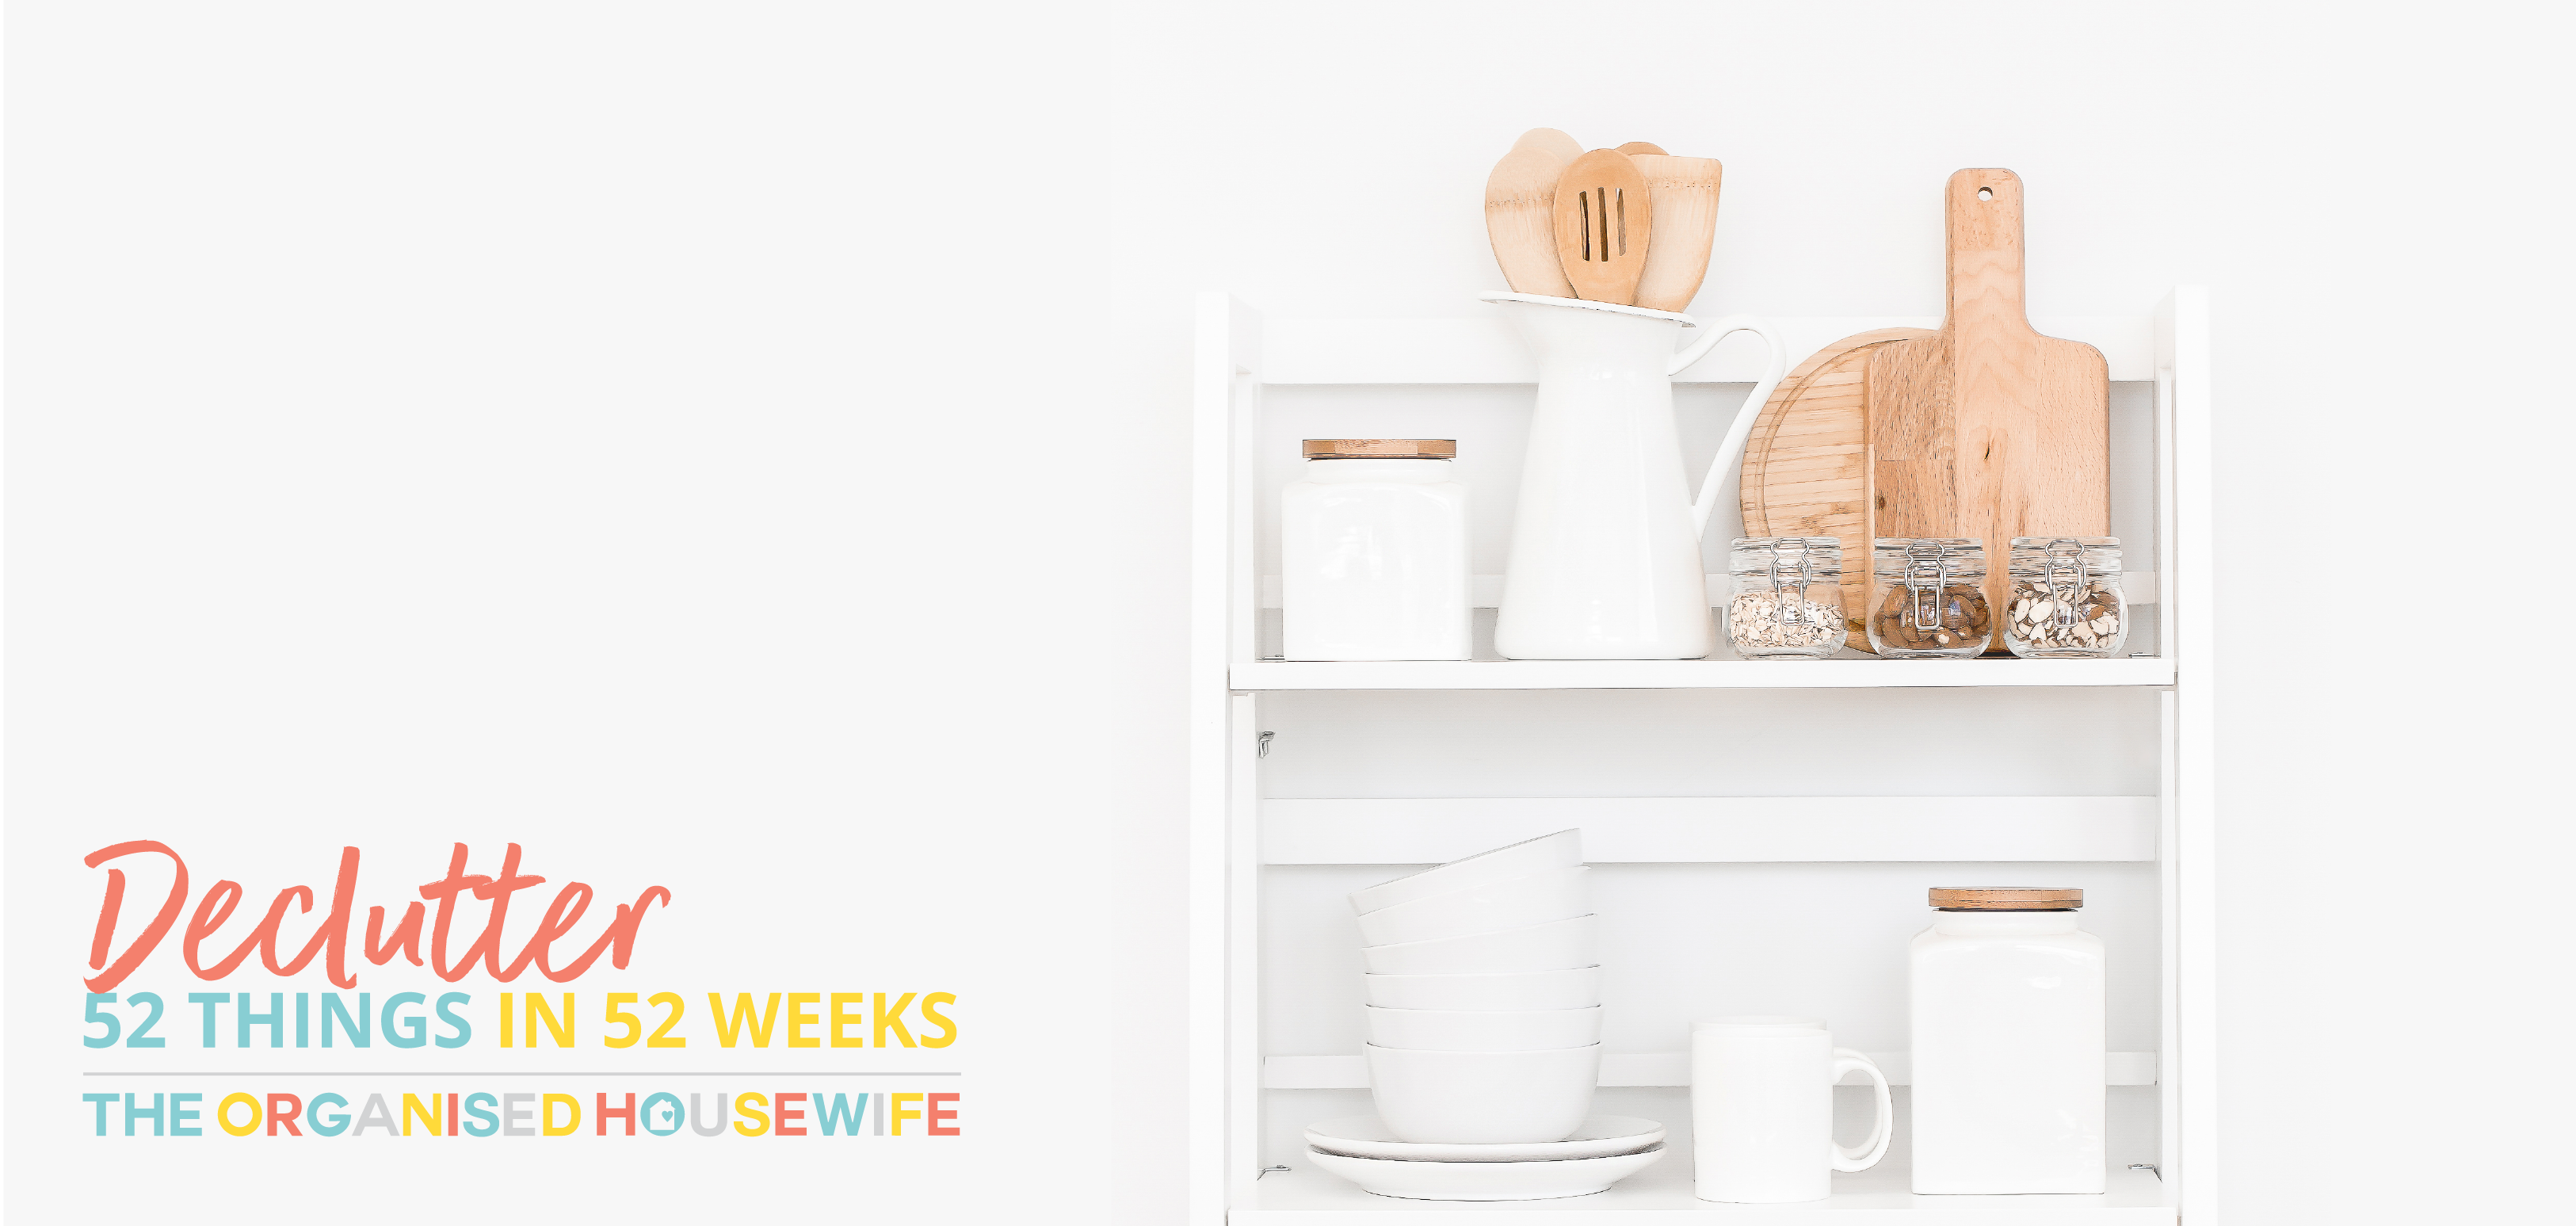 Declutter 52 Things in 52 weeks with The Organised Housewife